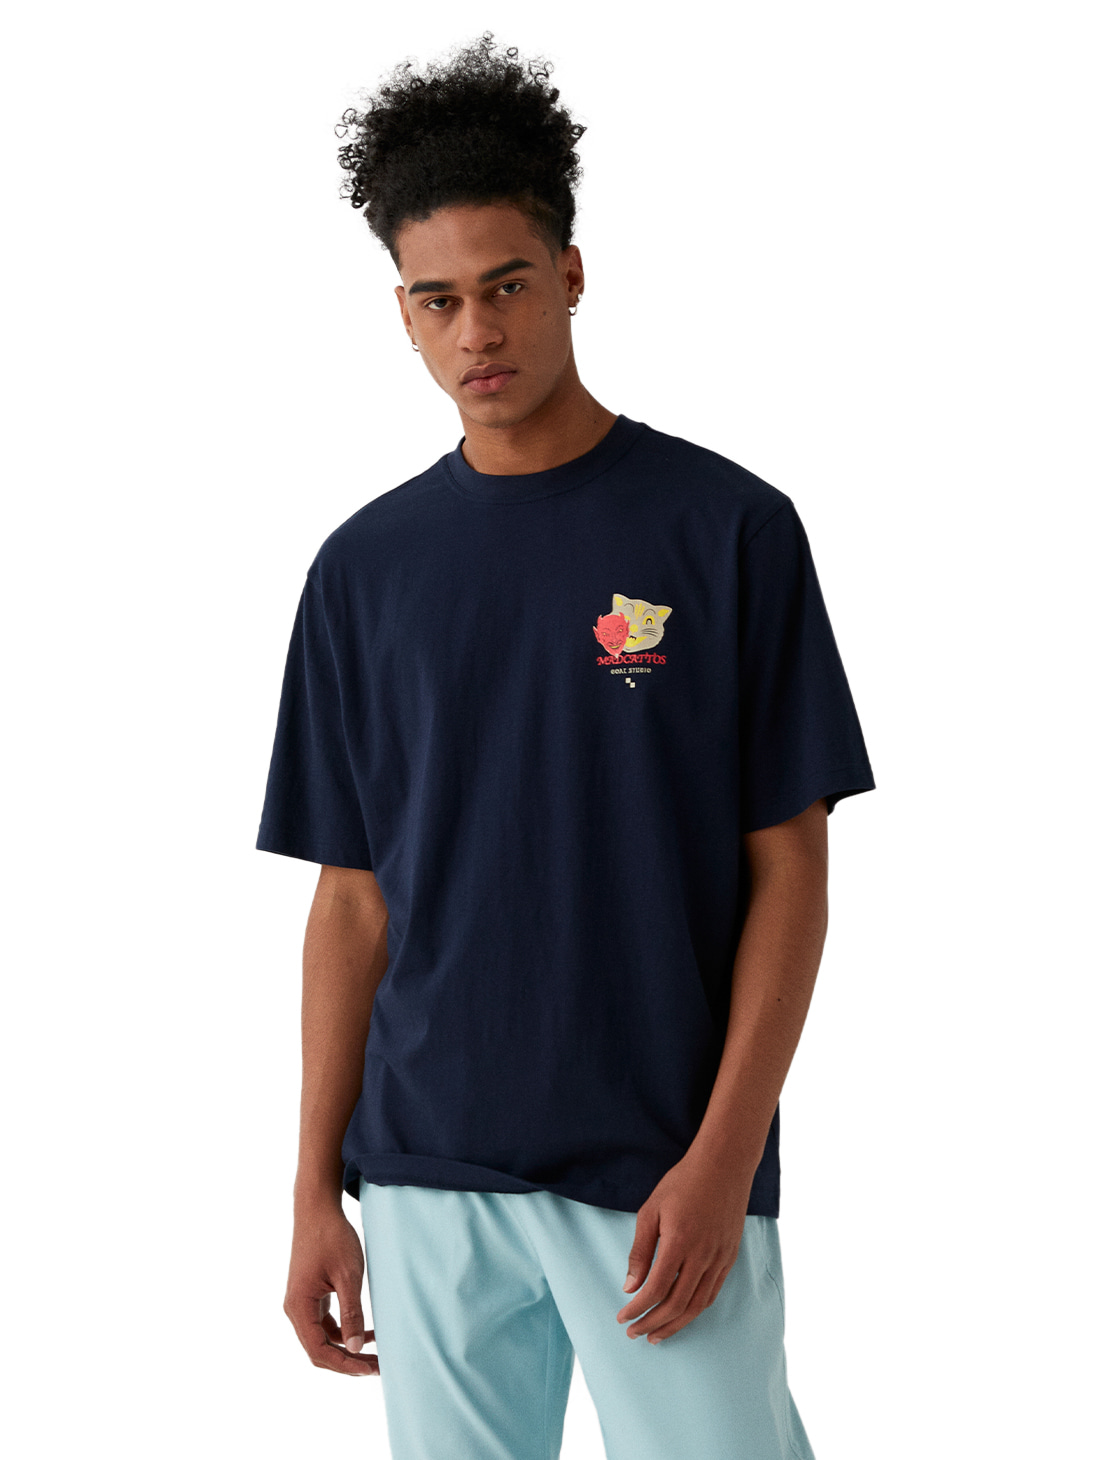 GOALSTUDIO MC MASK GRAPHIC TEE - NAVY